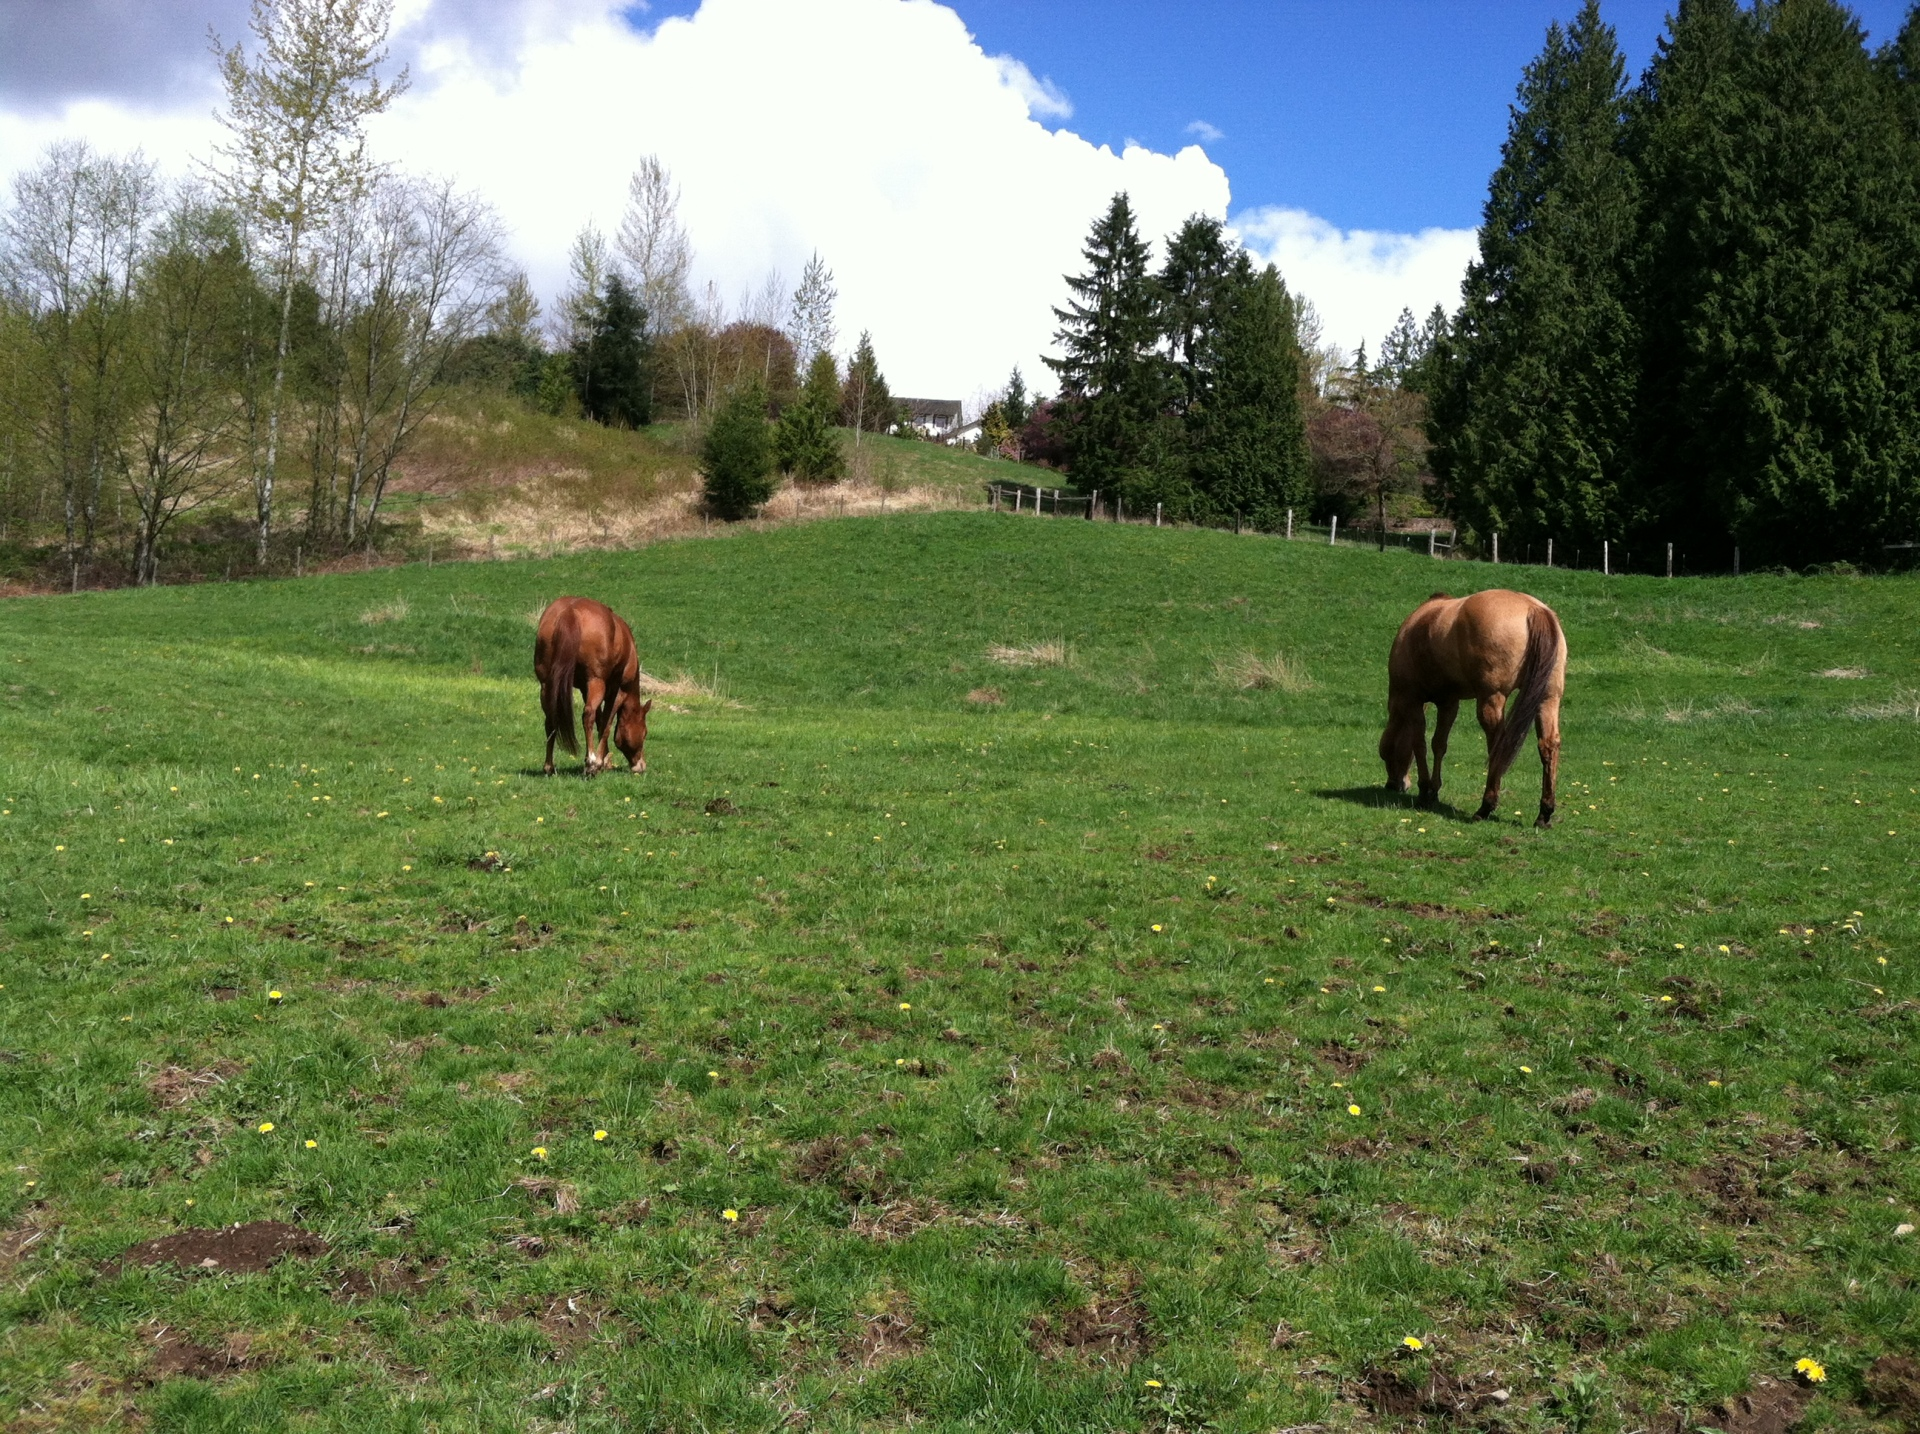 Ella and Zea grazing.